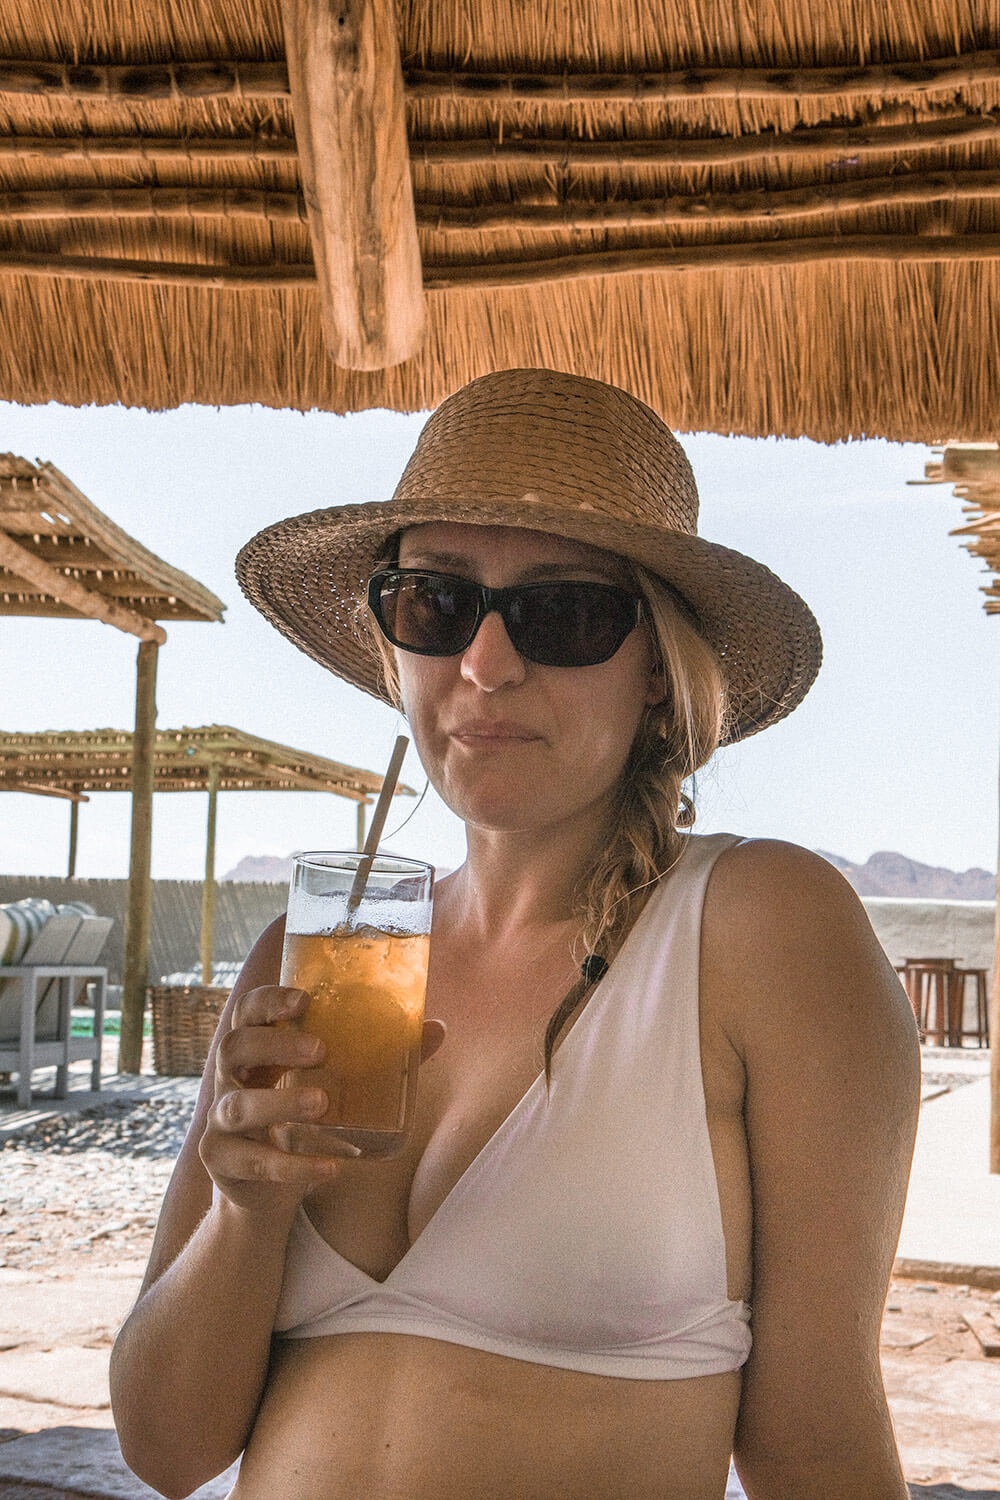 Sipping cocktails at the Kulala Desert Lodge